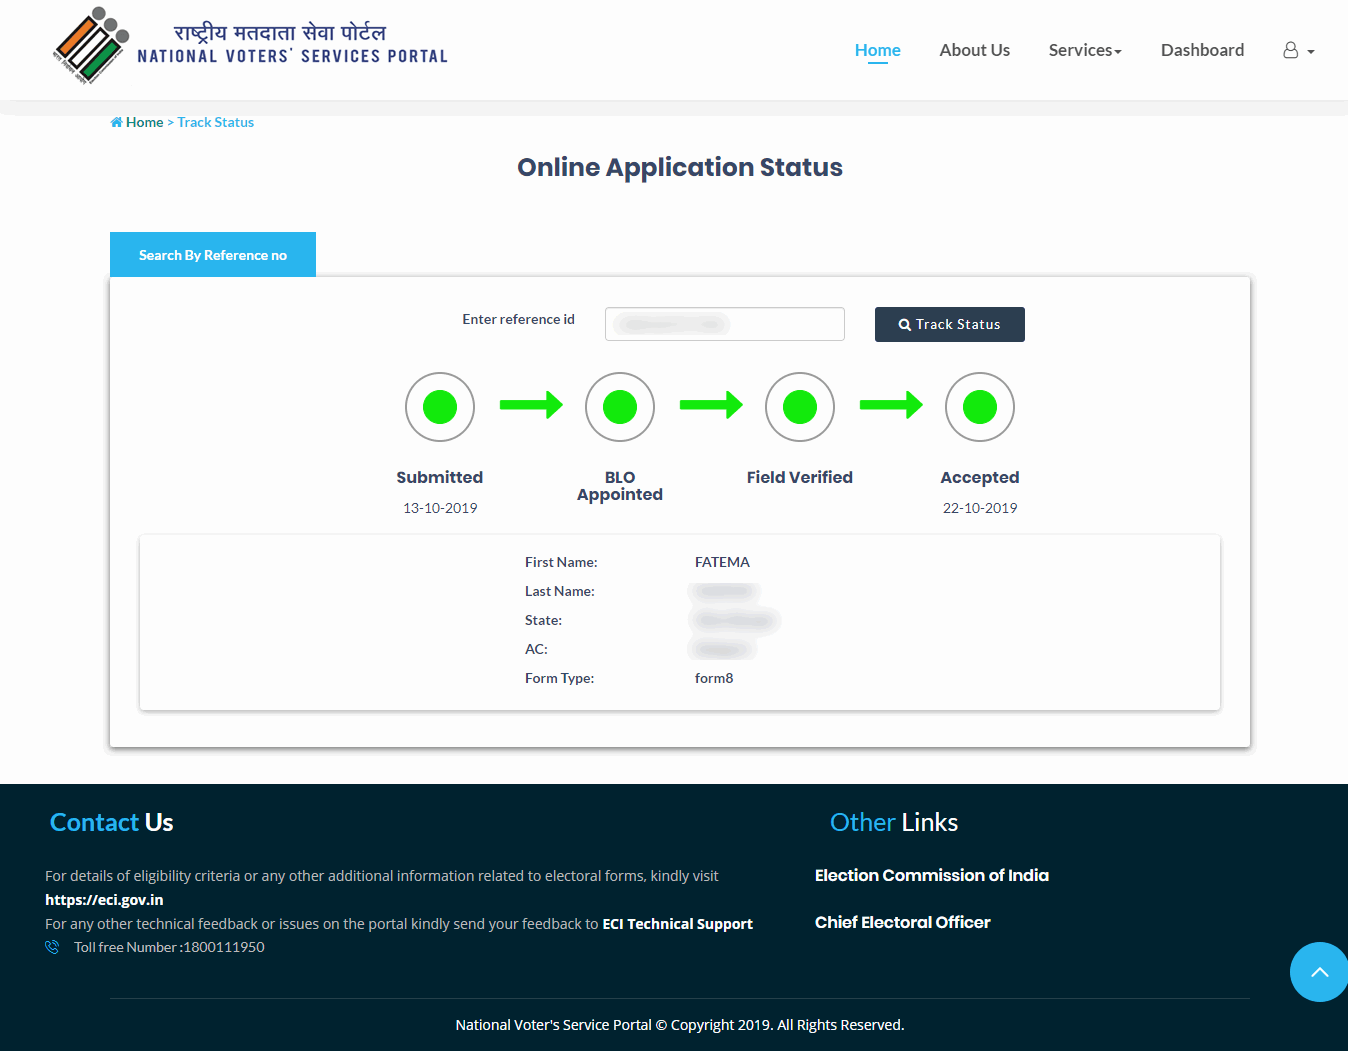 NVSP Application Status Accepted